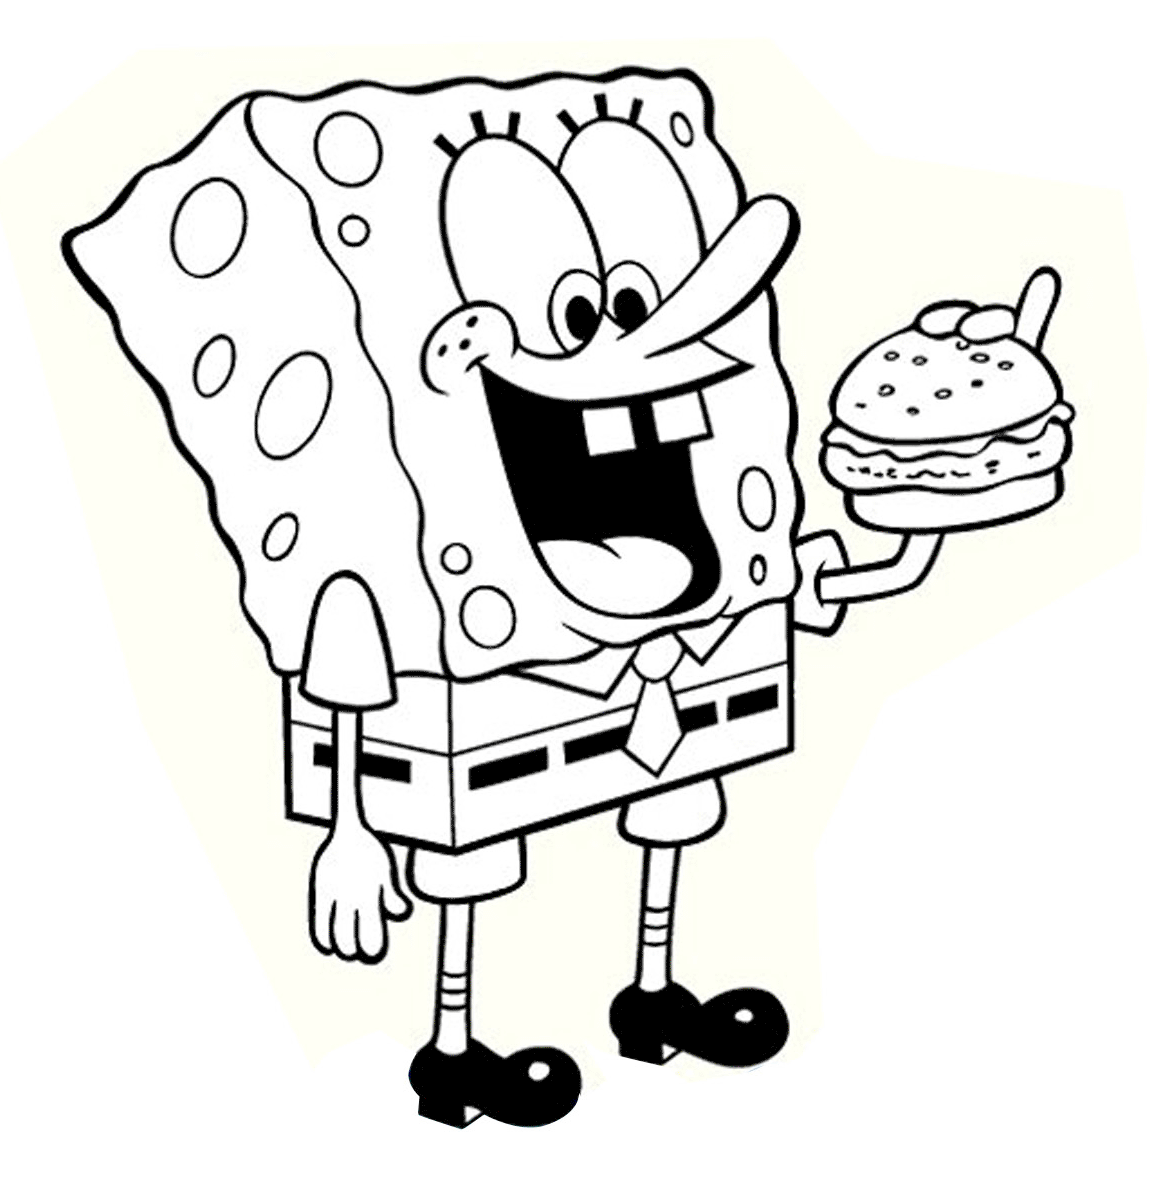 Spongebob Characters Drawing